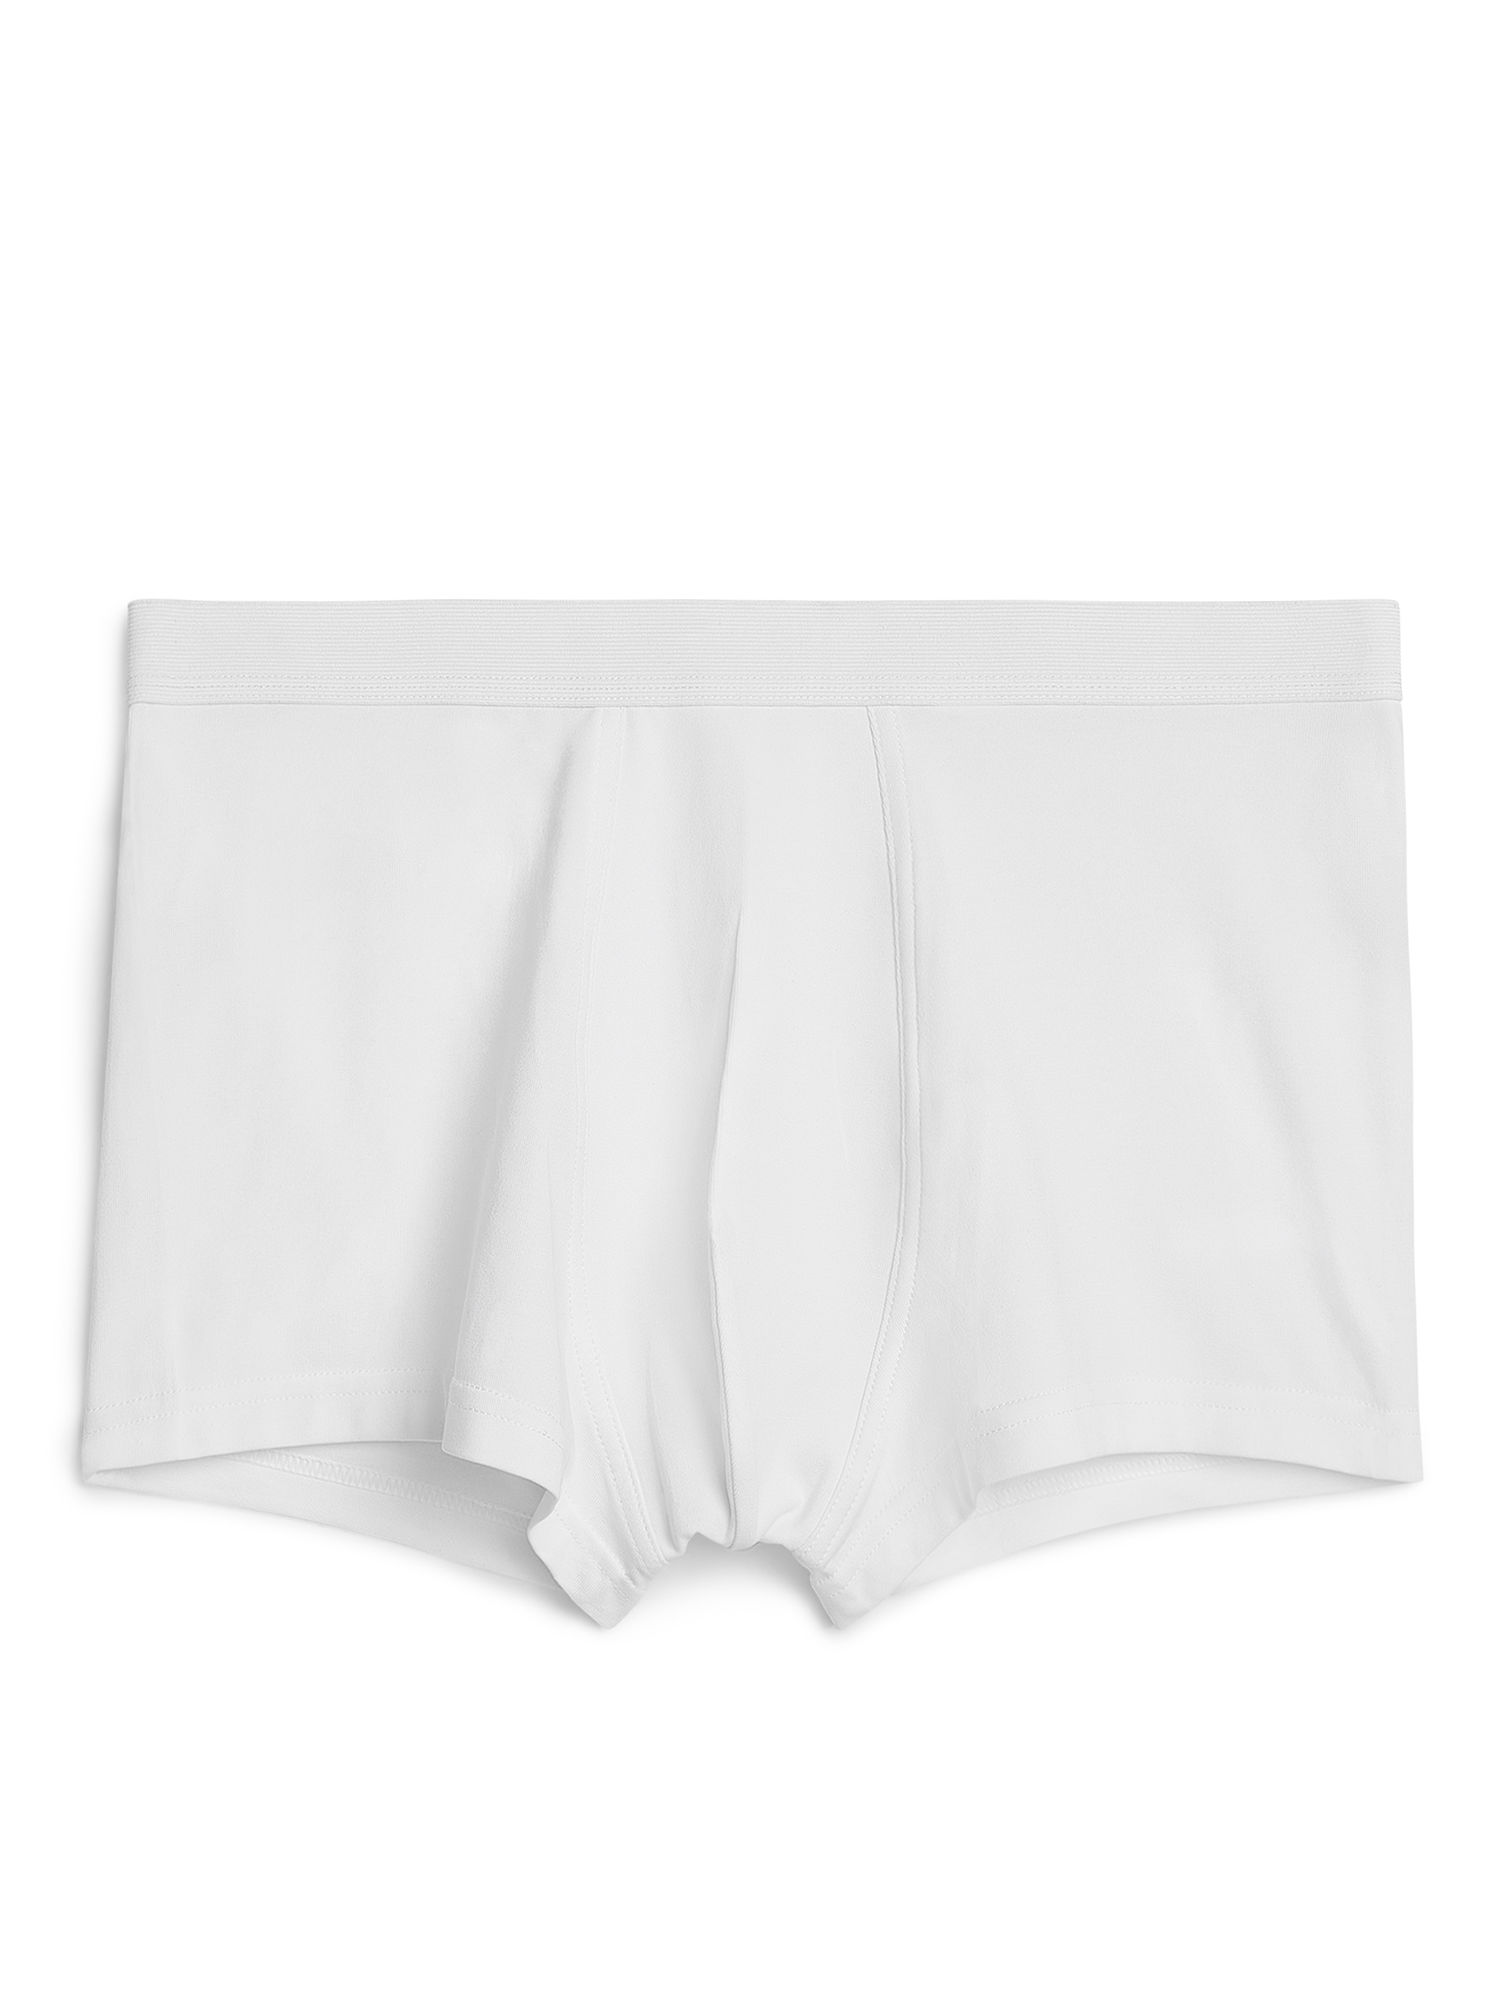 Fabric Swatch image of Arket pima cotton trunks in white